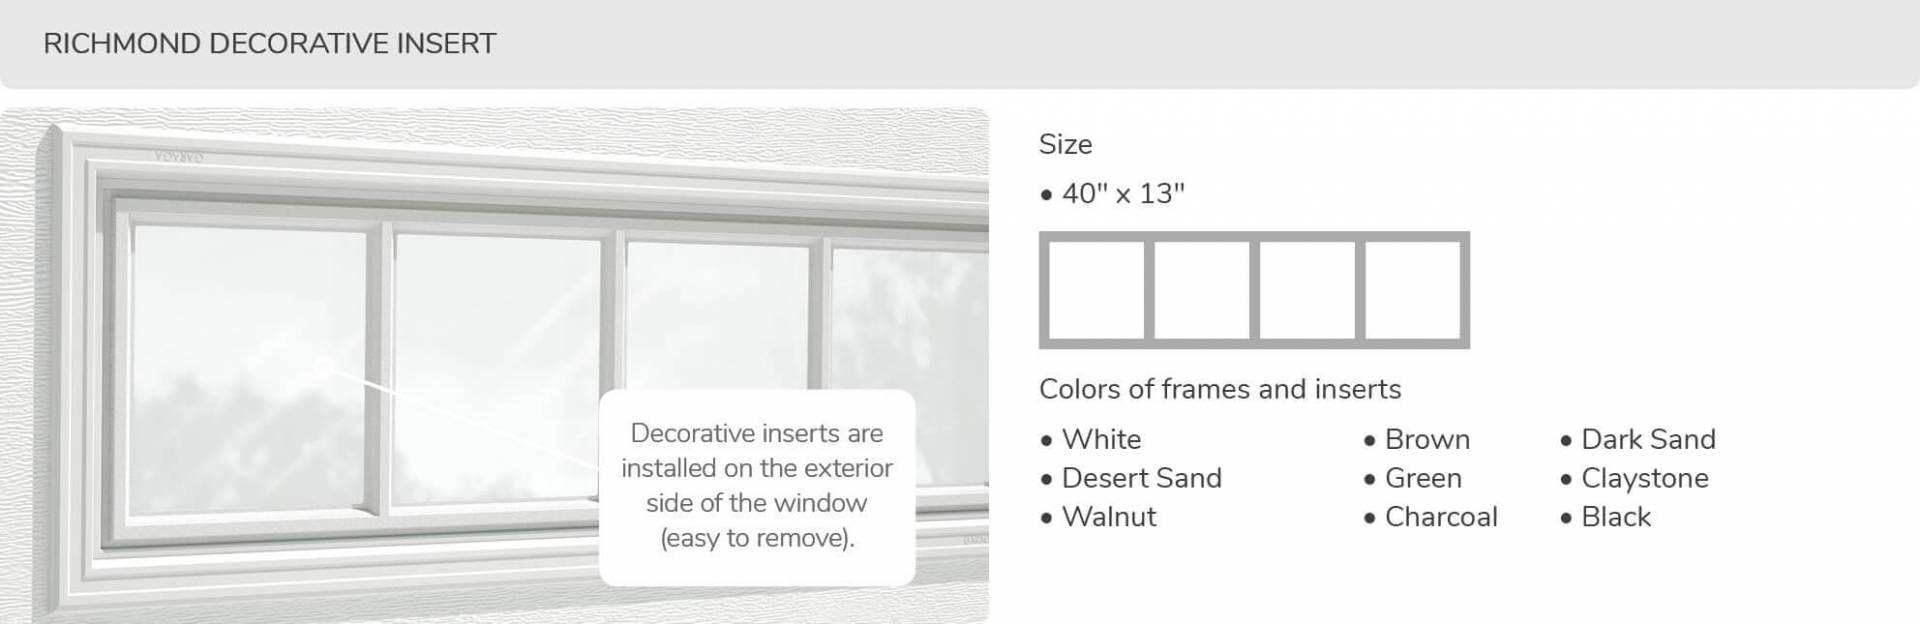 Richmond Decorative Insert, 40' x 13', available for door R-16